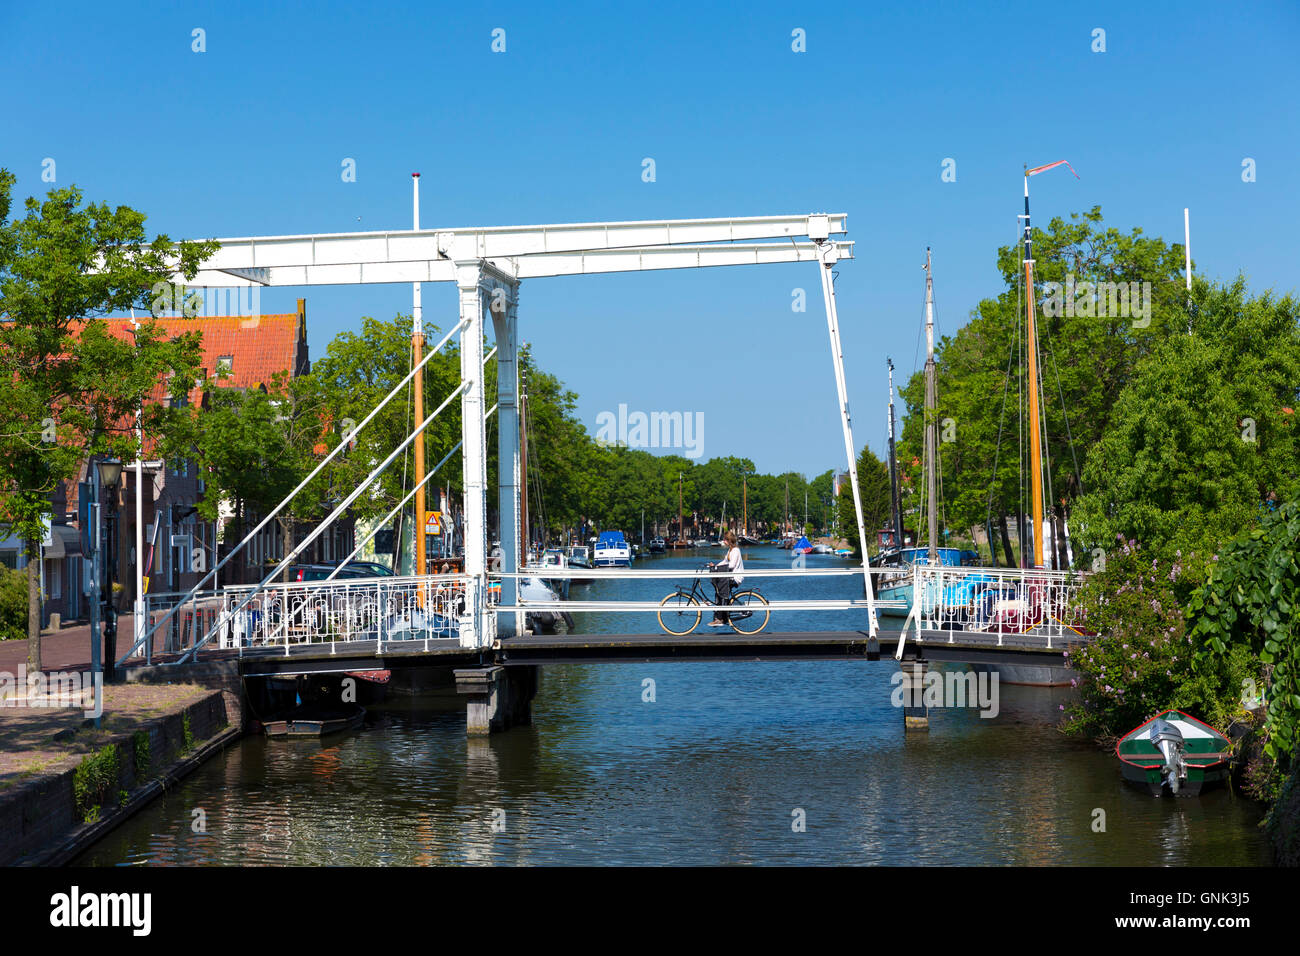 Woman cyclist cycling on bascule vertical-lift bridge, lift up drawbridge over canal waterway, Edam, The Netherlands - Stock Image